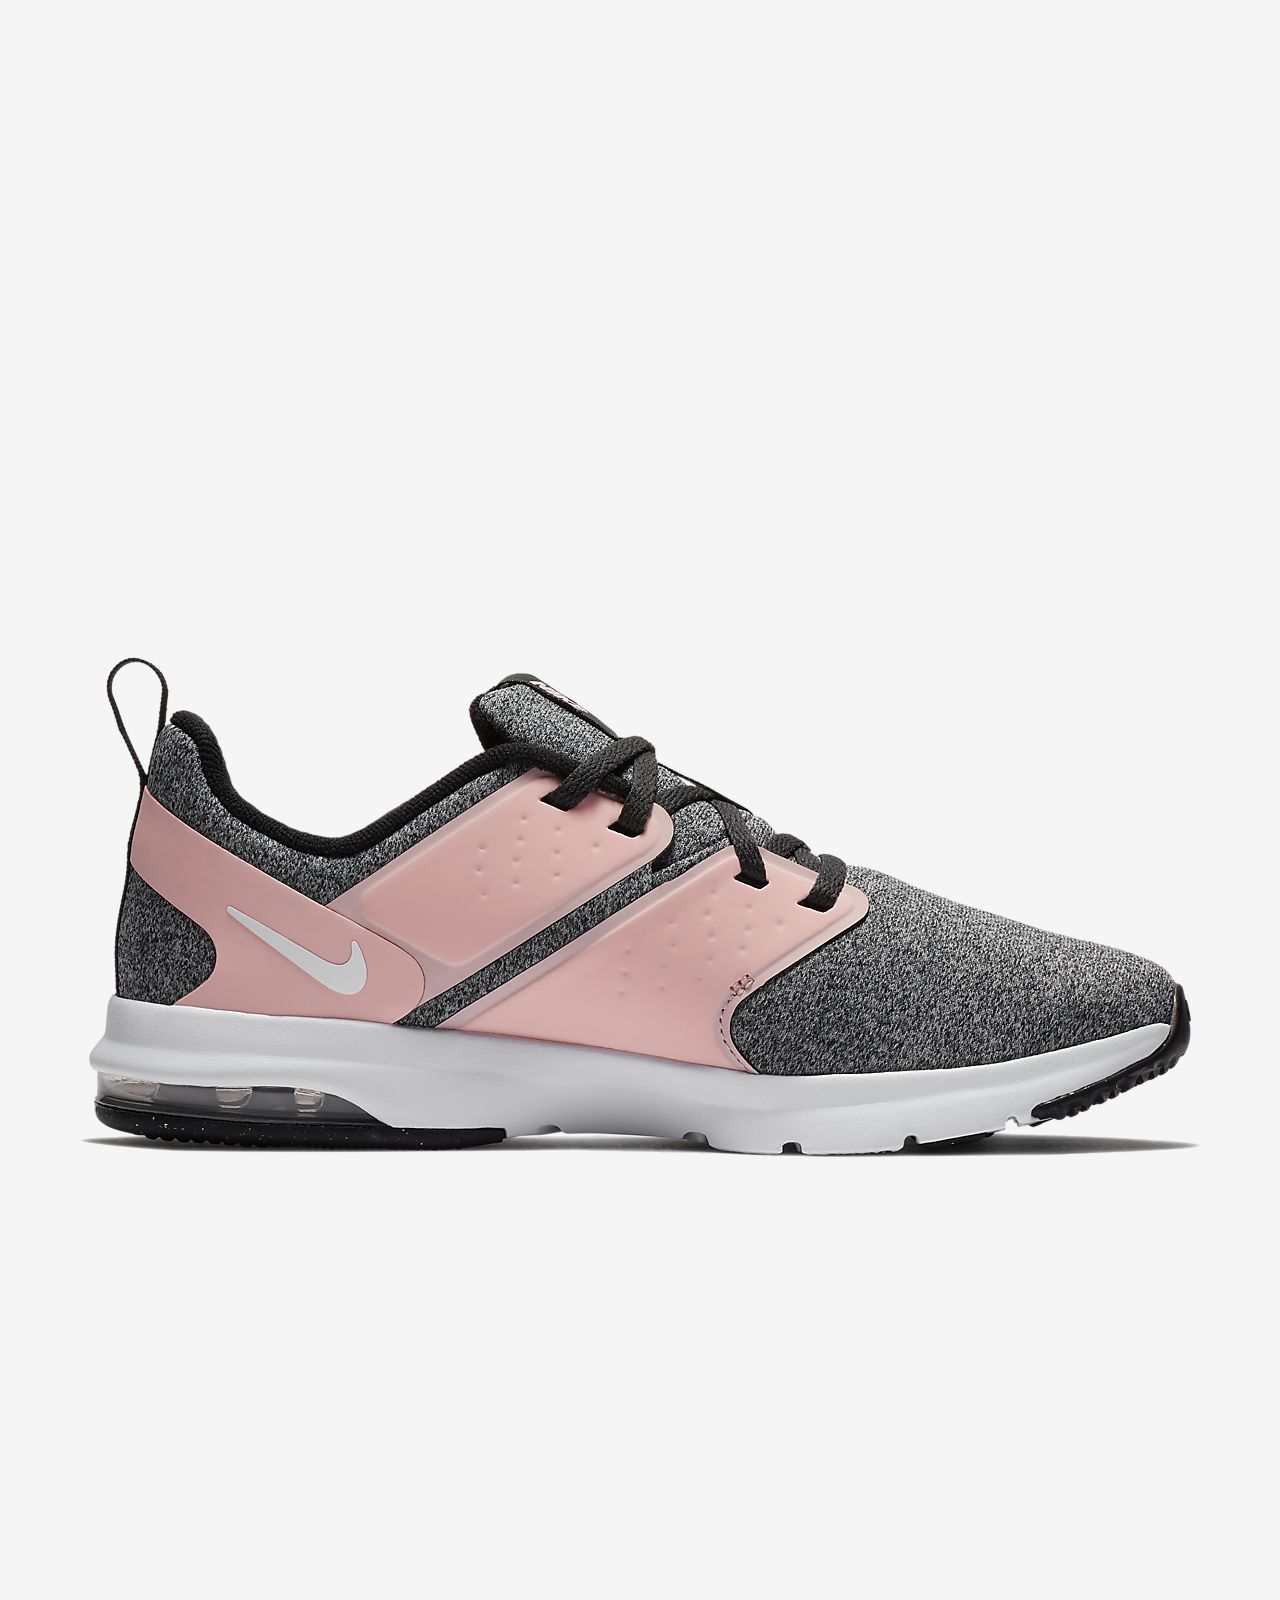 Nike Wmns Air Bella TR Pink Grey White Women Cross Training Shoes 924338006